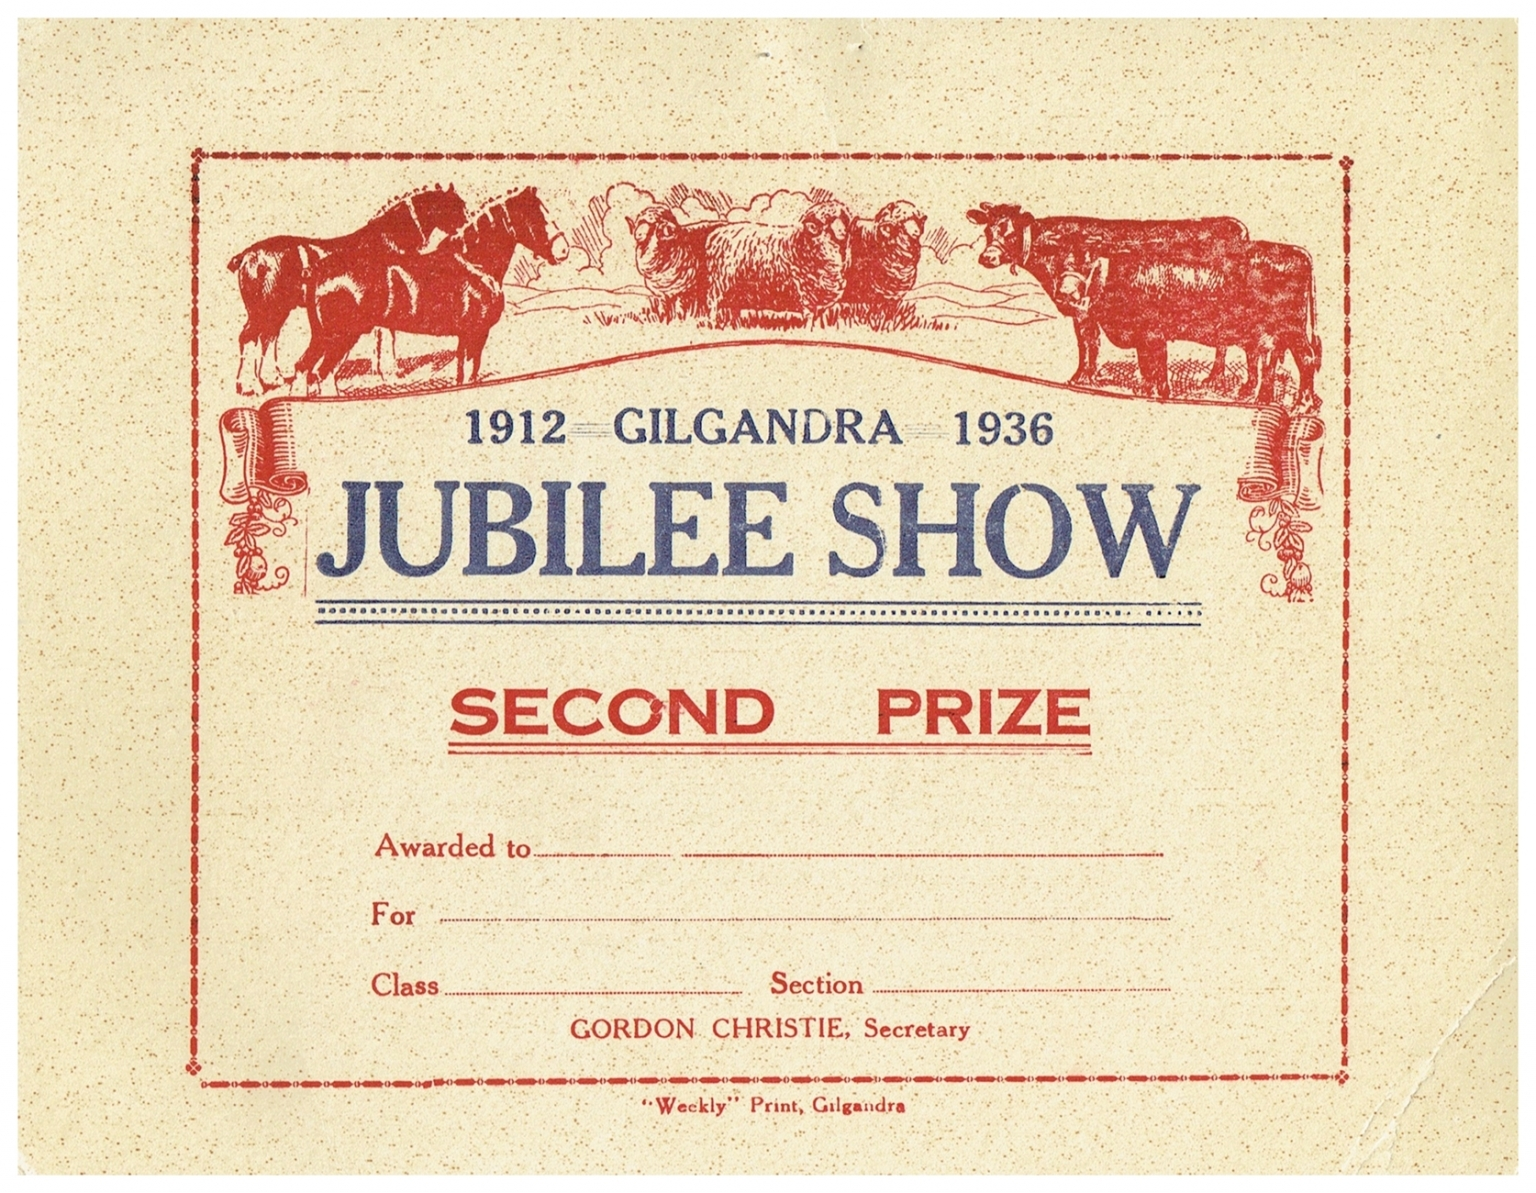 1936 Second Prize Card